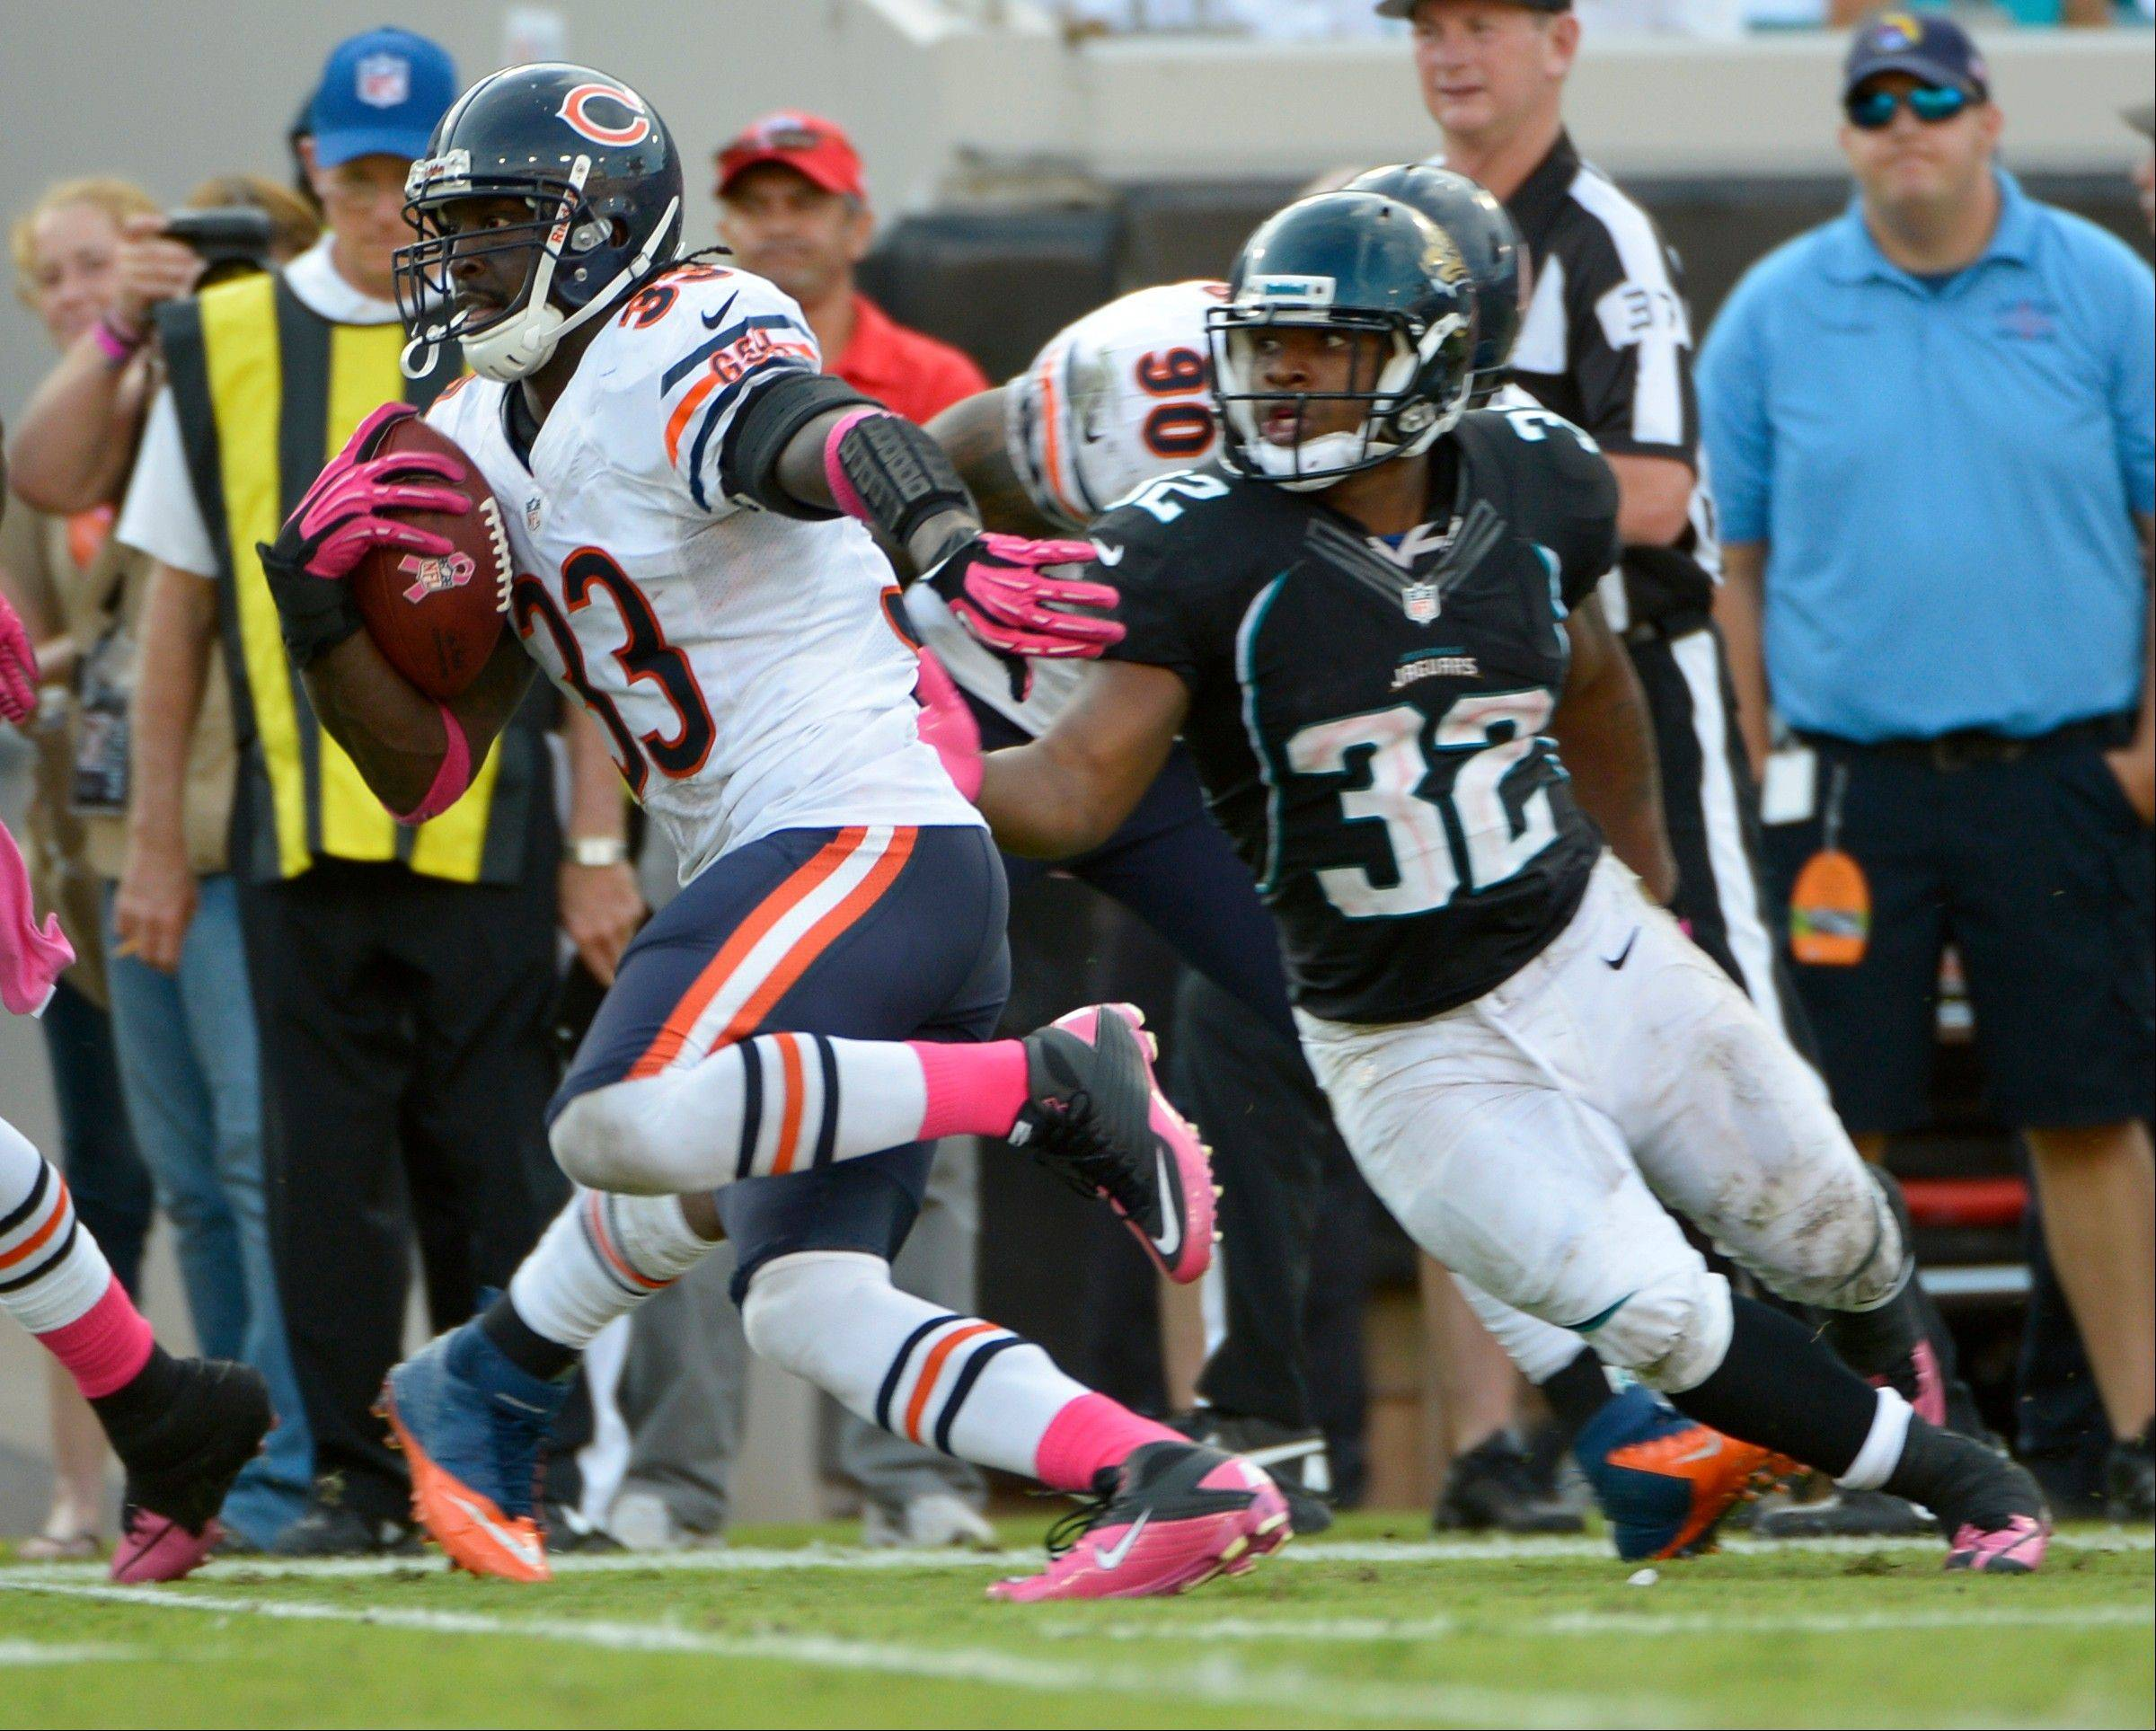 Chicago Bears cornerback Charles Tillman runs past Jacksonville Jaguars running back Maurice Jones-Drew after intercepting a pass for a 36-yard touchdown during the second half of an NFL football game, Sunday, Oct. 7, 2012, in Jacksonville, Fla.